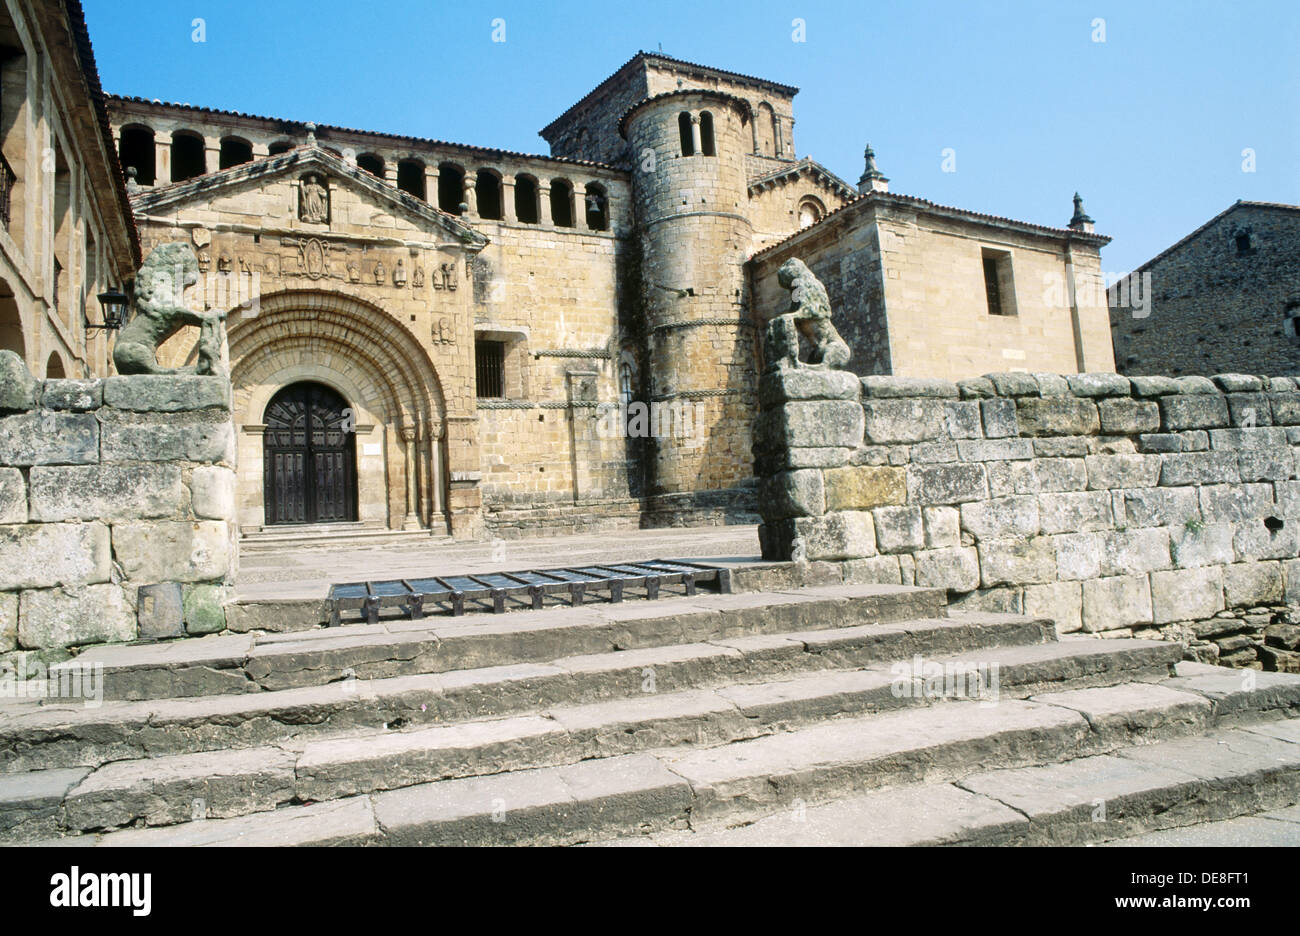 Santa Juliana collegiate church, Santillana del Mar. Cantabria, Spain - Stock Image